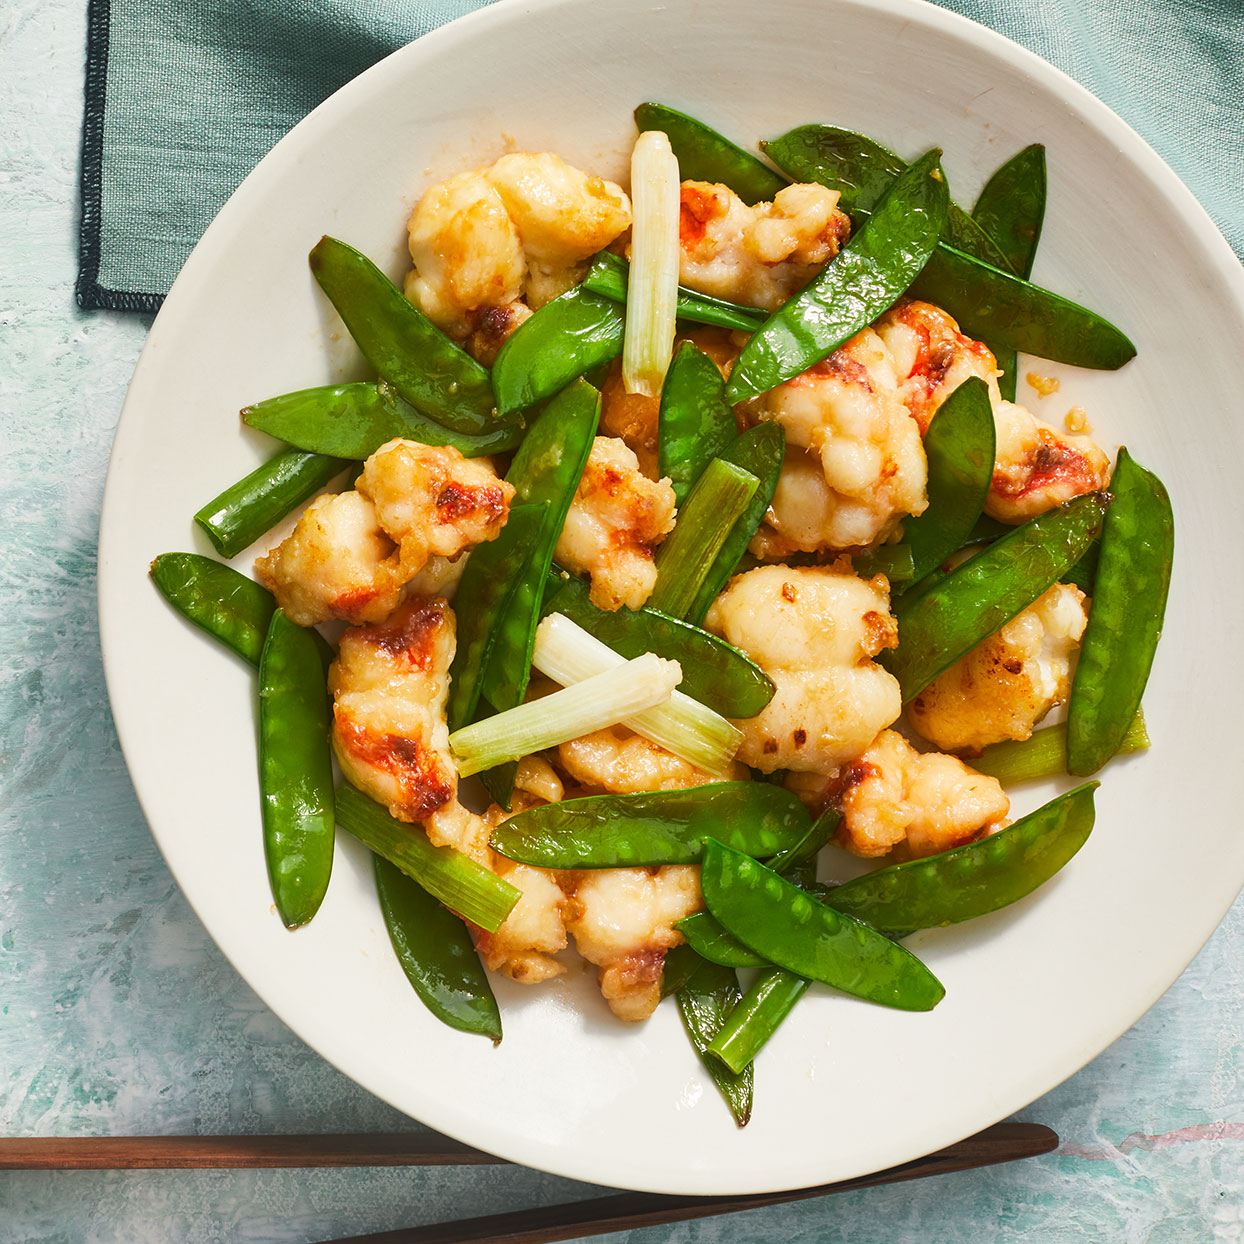 Lobster, Ginger & Scallion Stir-Fry